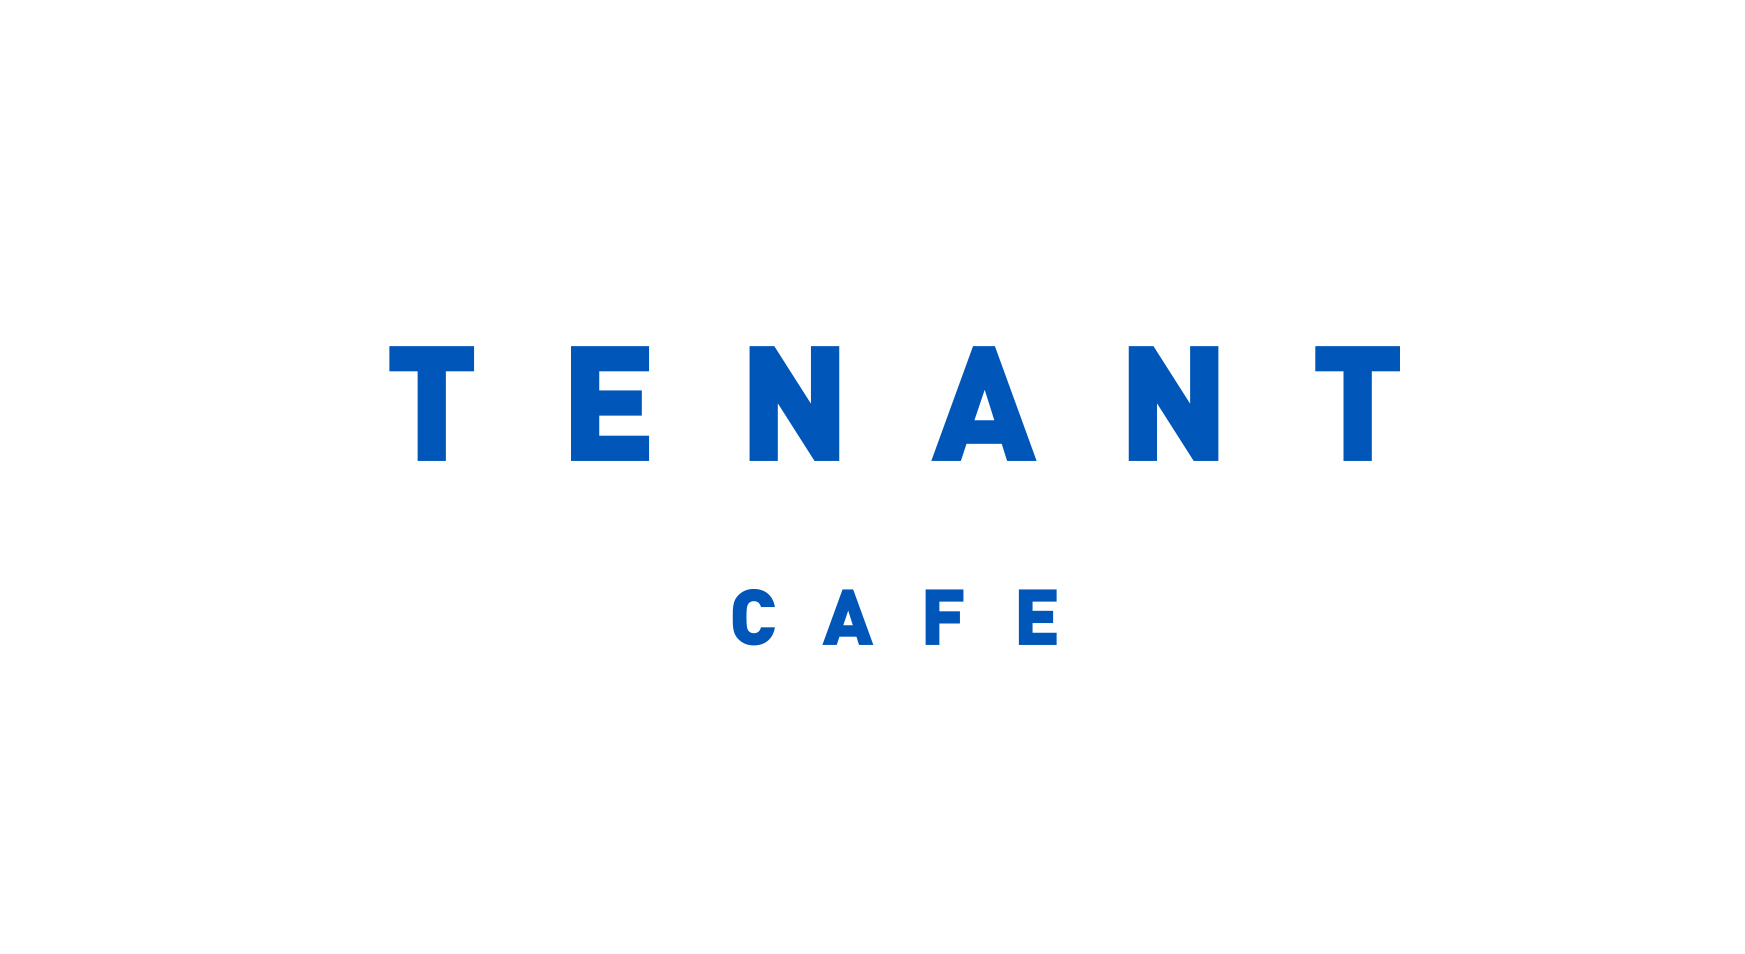 Tenant Apparel and Cafe Co.